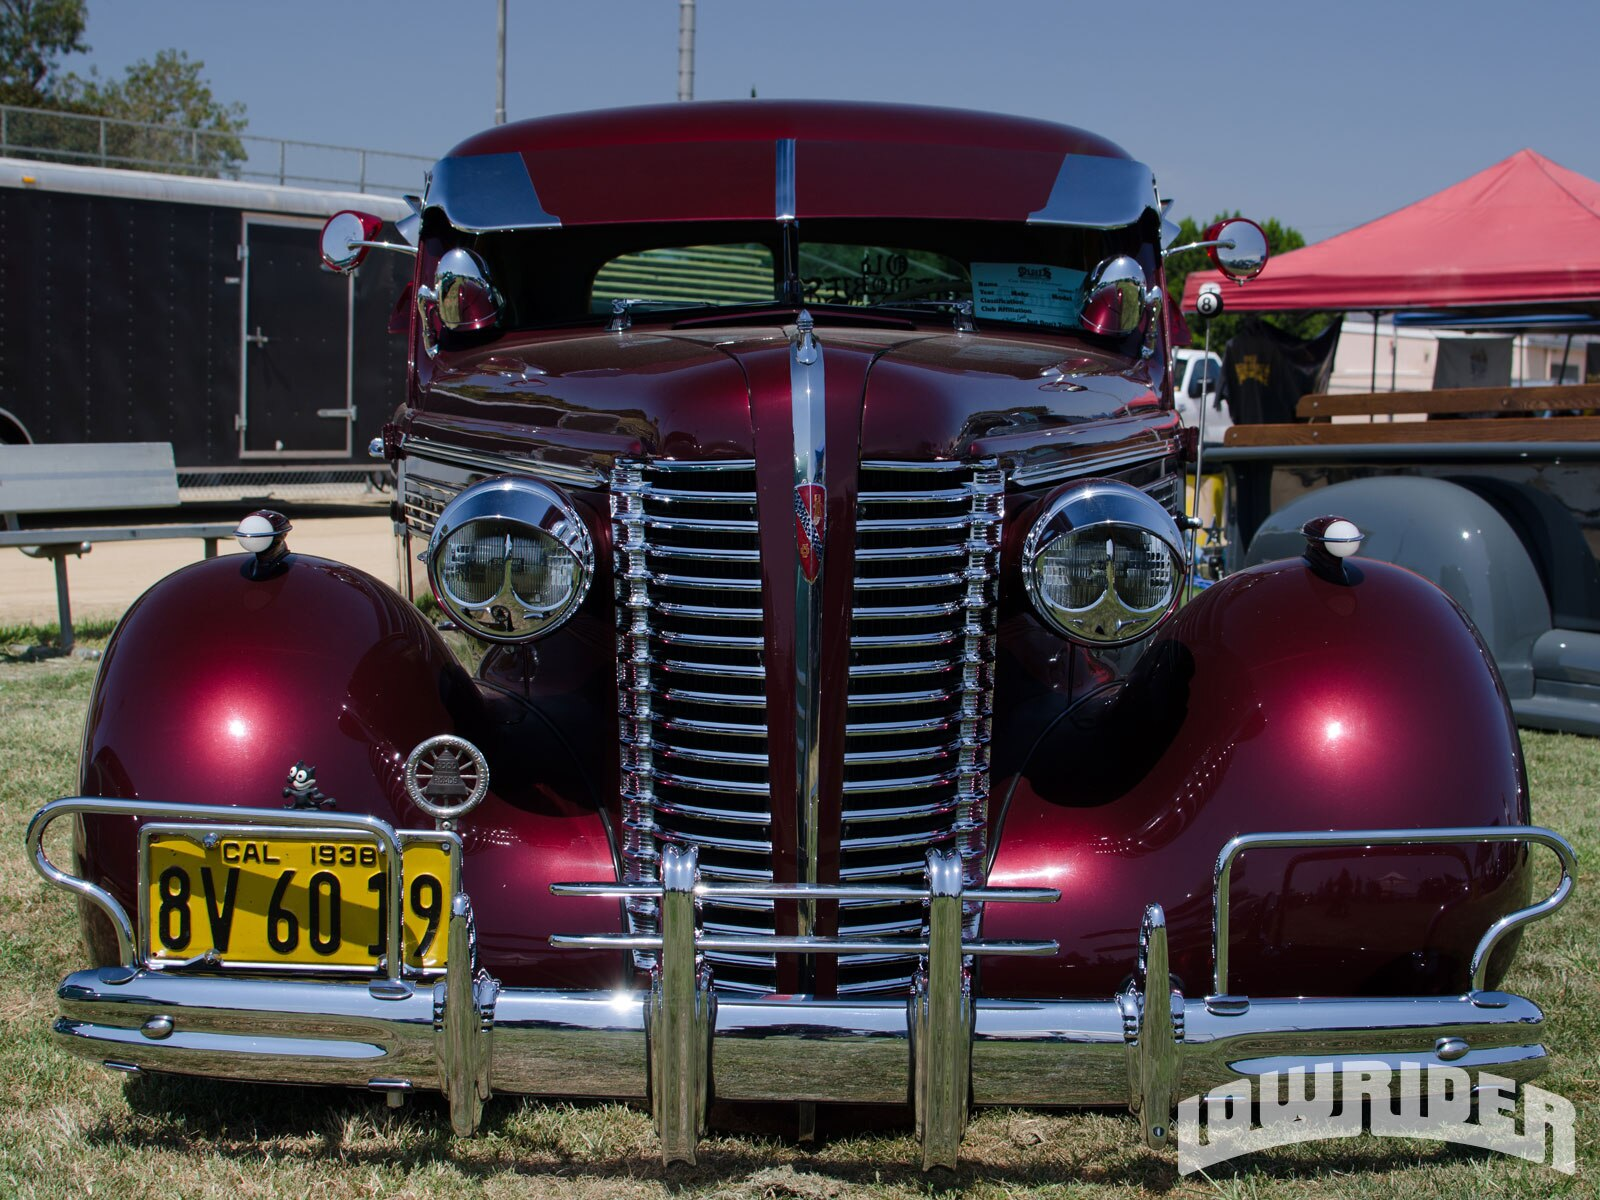 1301-lrmp-01-o-2012-oldies-CC-car-show-bomb-front-end1